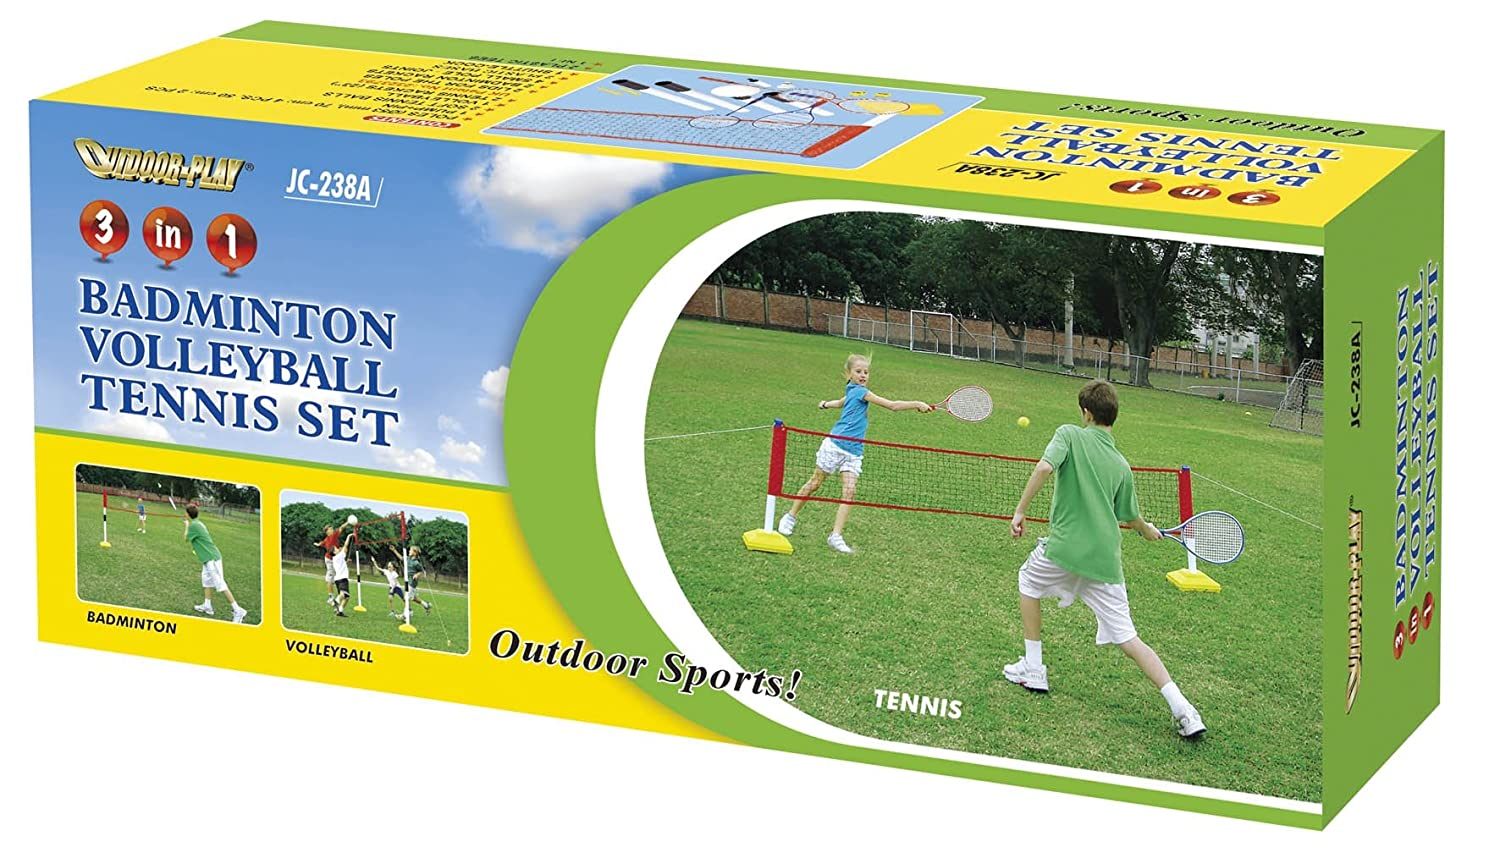 3 In 1 Badminton Volleyball and Tennis Training Game Set kids garden sport kit childrens games JLS